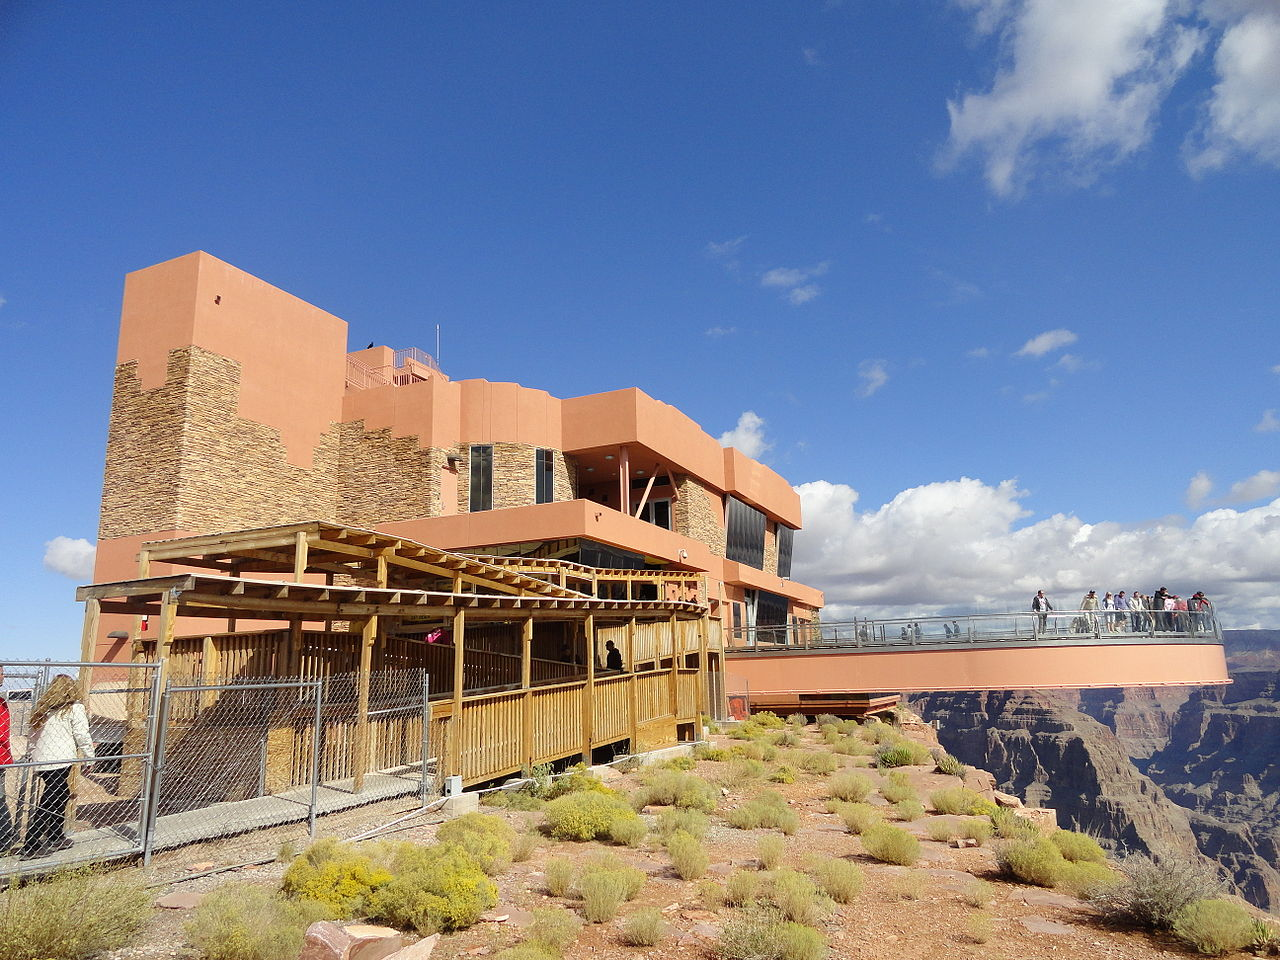 1280px-Skywalk,_Arizona,_USA_(9536805526)